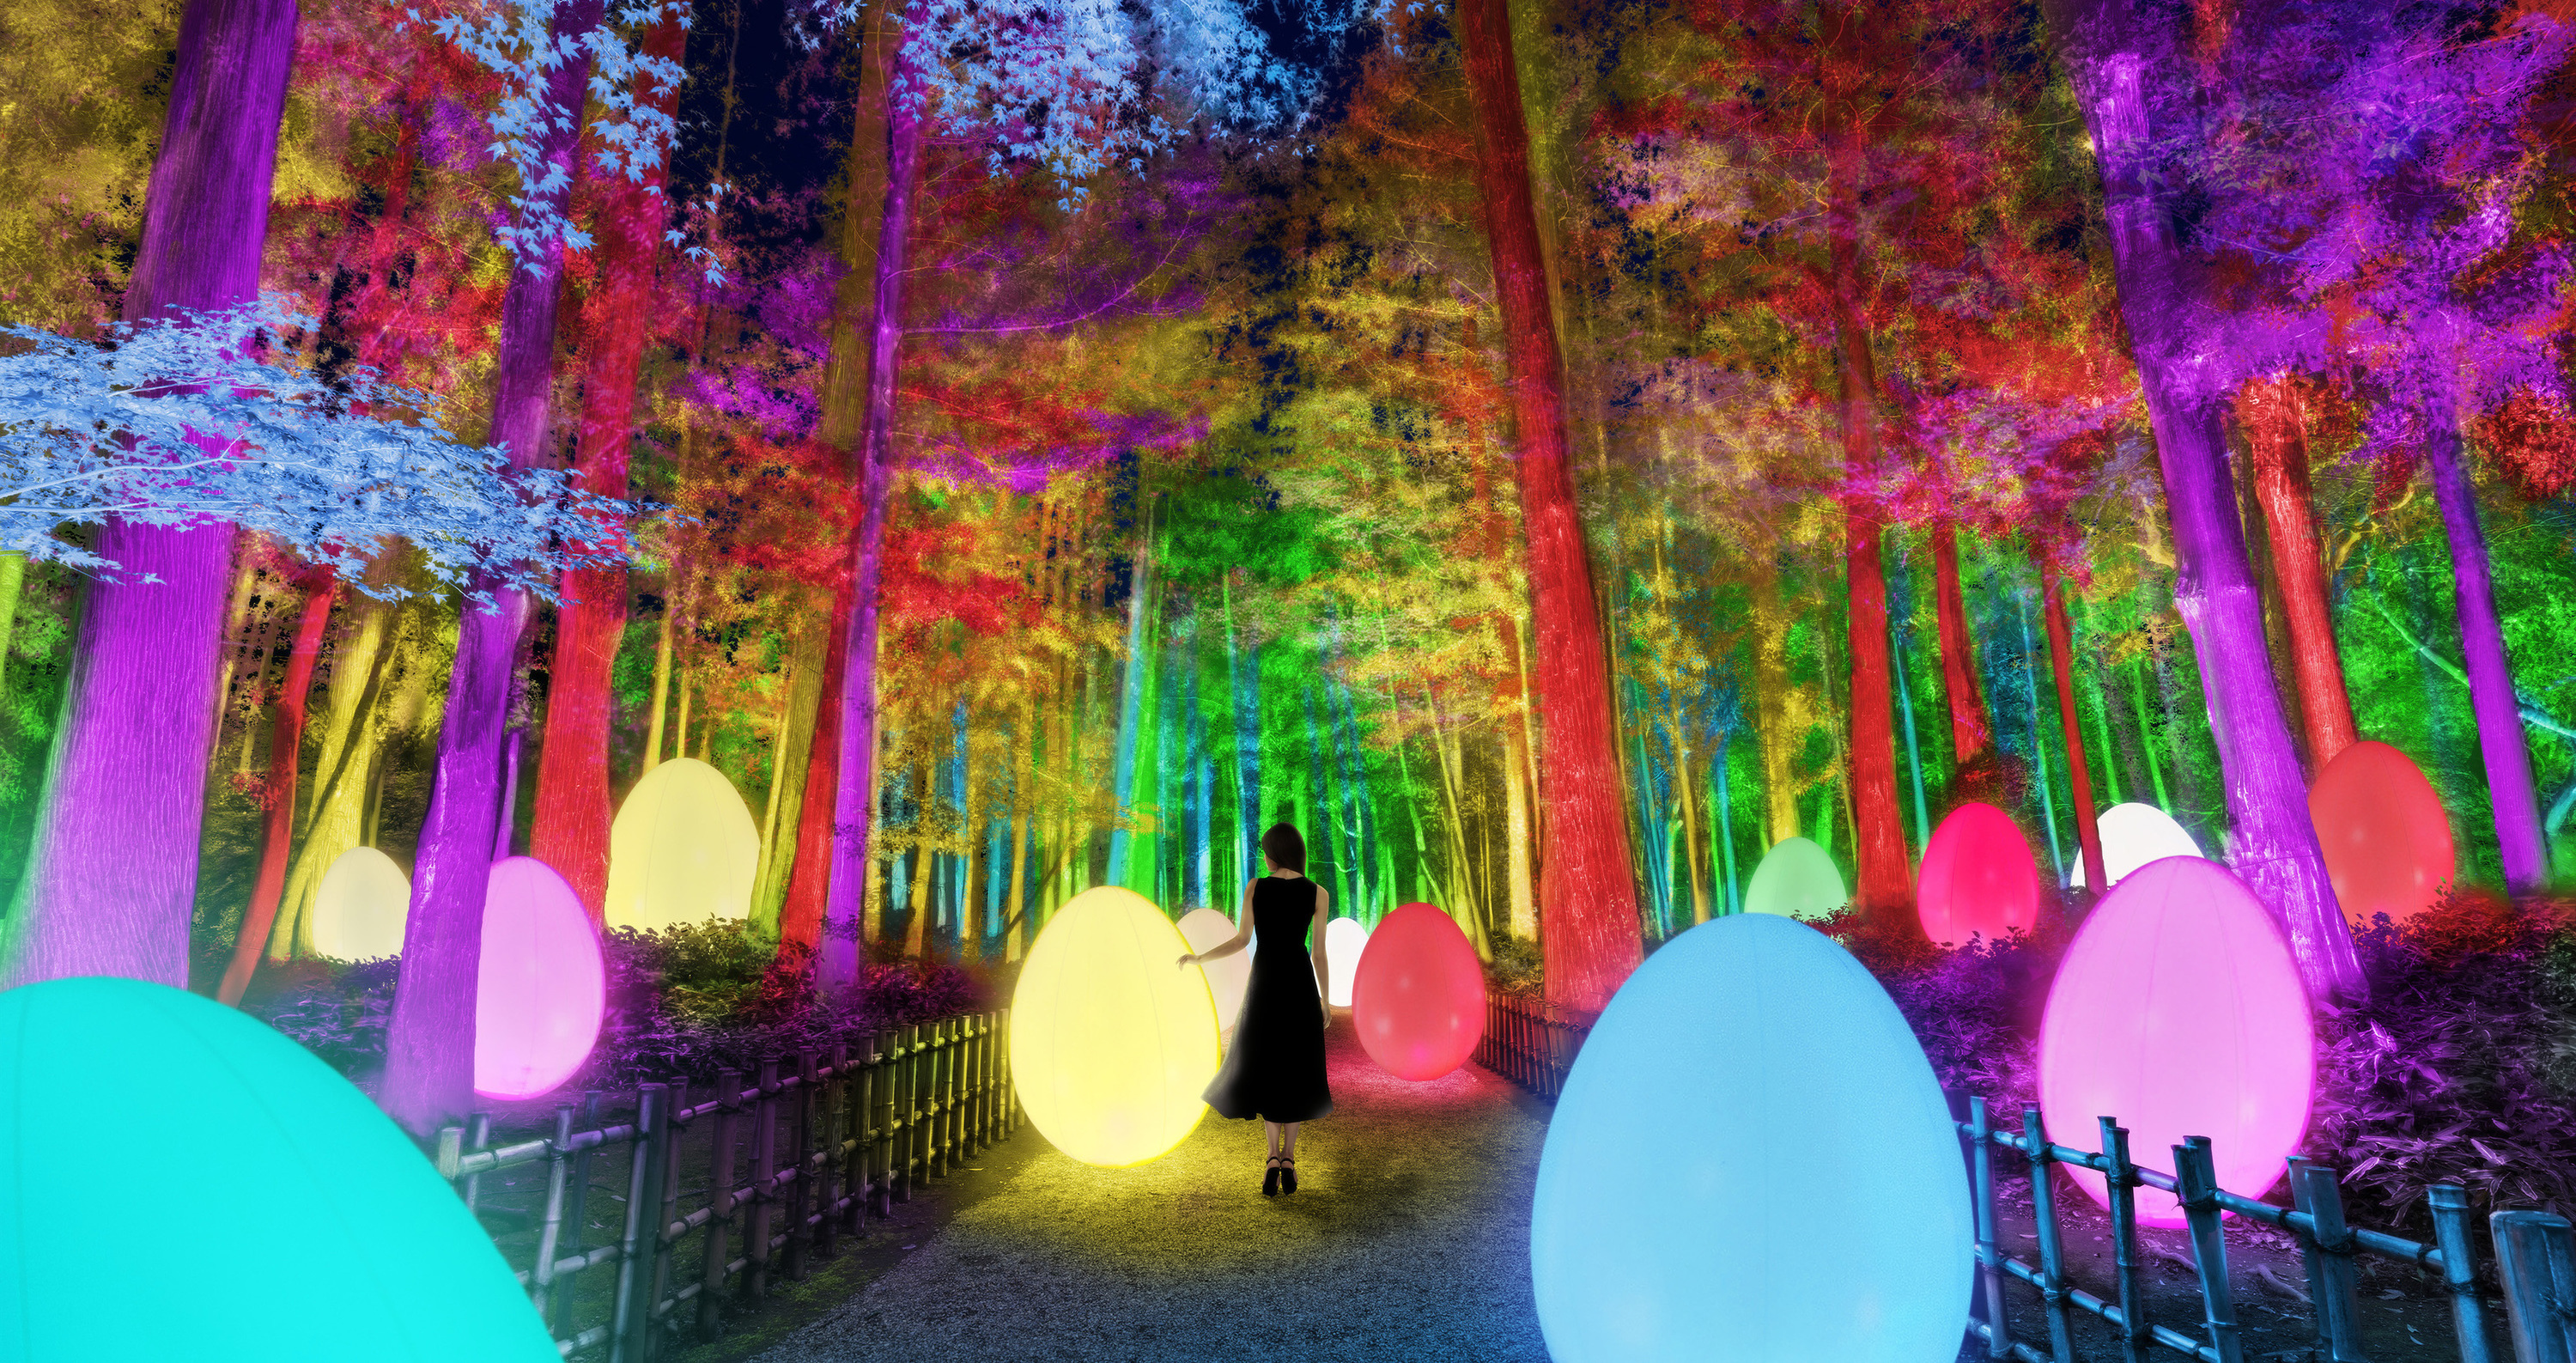 10 things to look forward to in 2021 in Tokyo and Japan